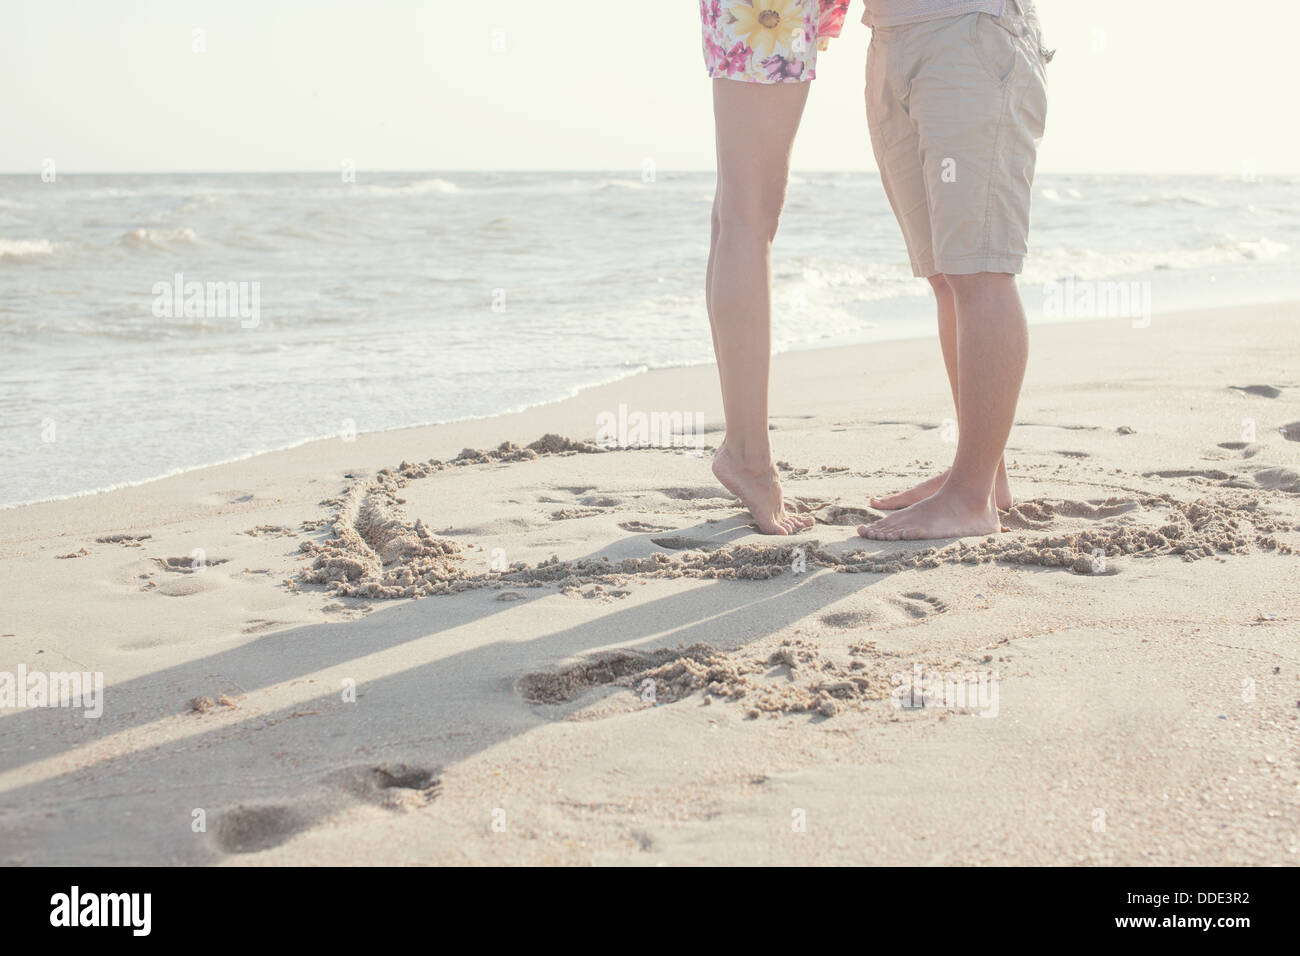 Couple legs standing inside heart picture on the sand. Summertime fun - Stock Image